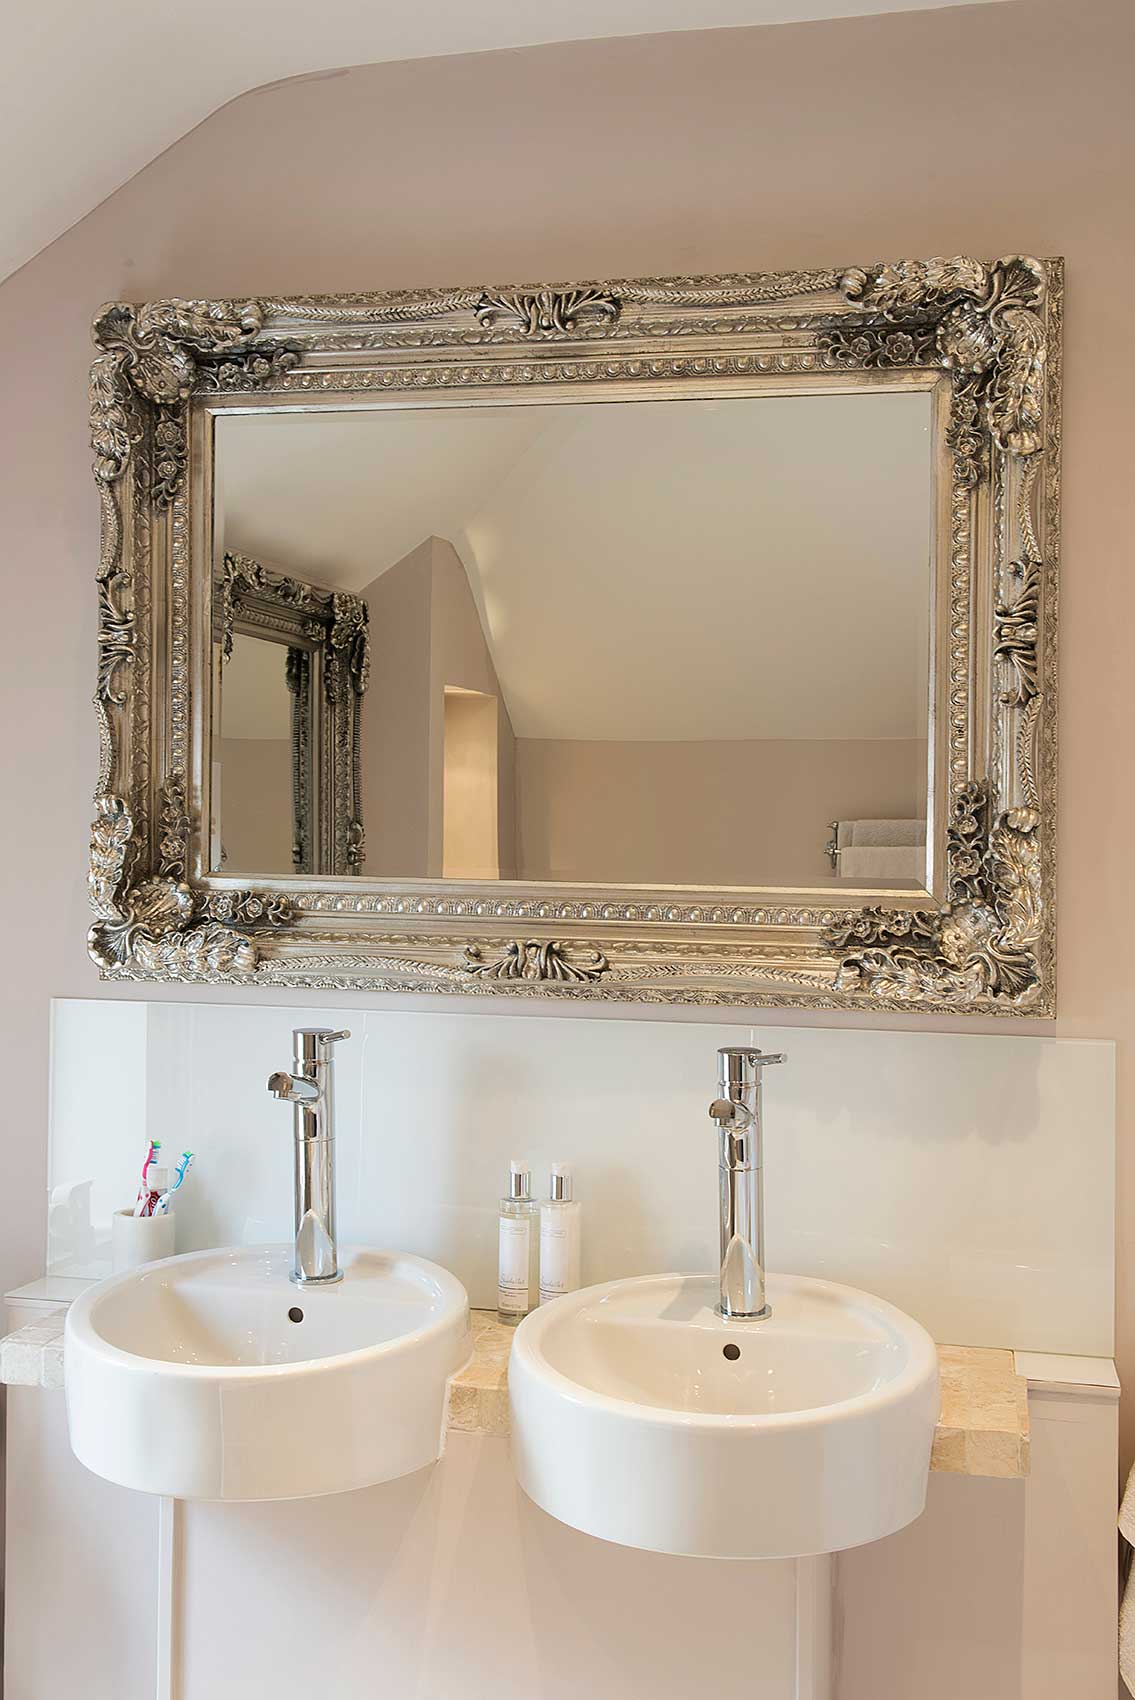 Large Silver Shabby Chic Large Ornate Wall Mirror 4ft X 3ft 120cm X 90cm New 5055781825408 Ebay